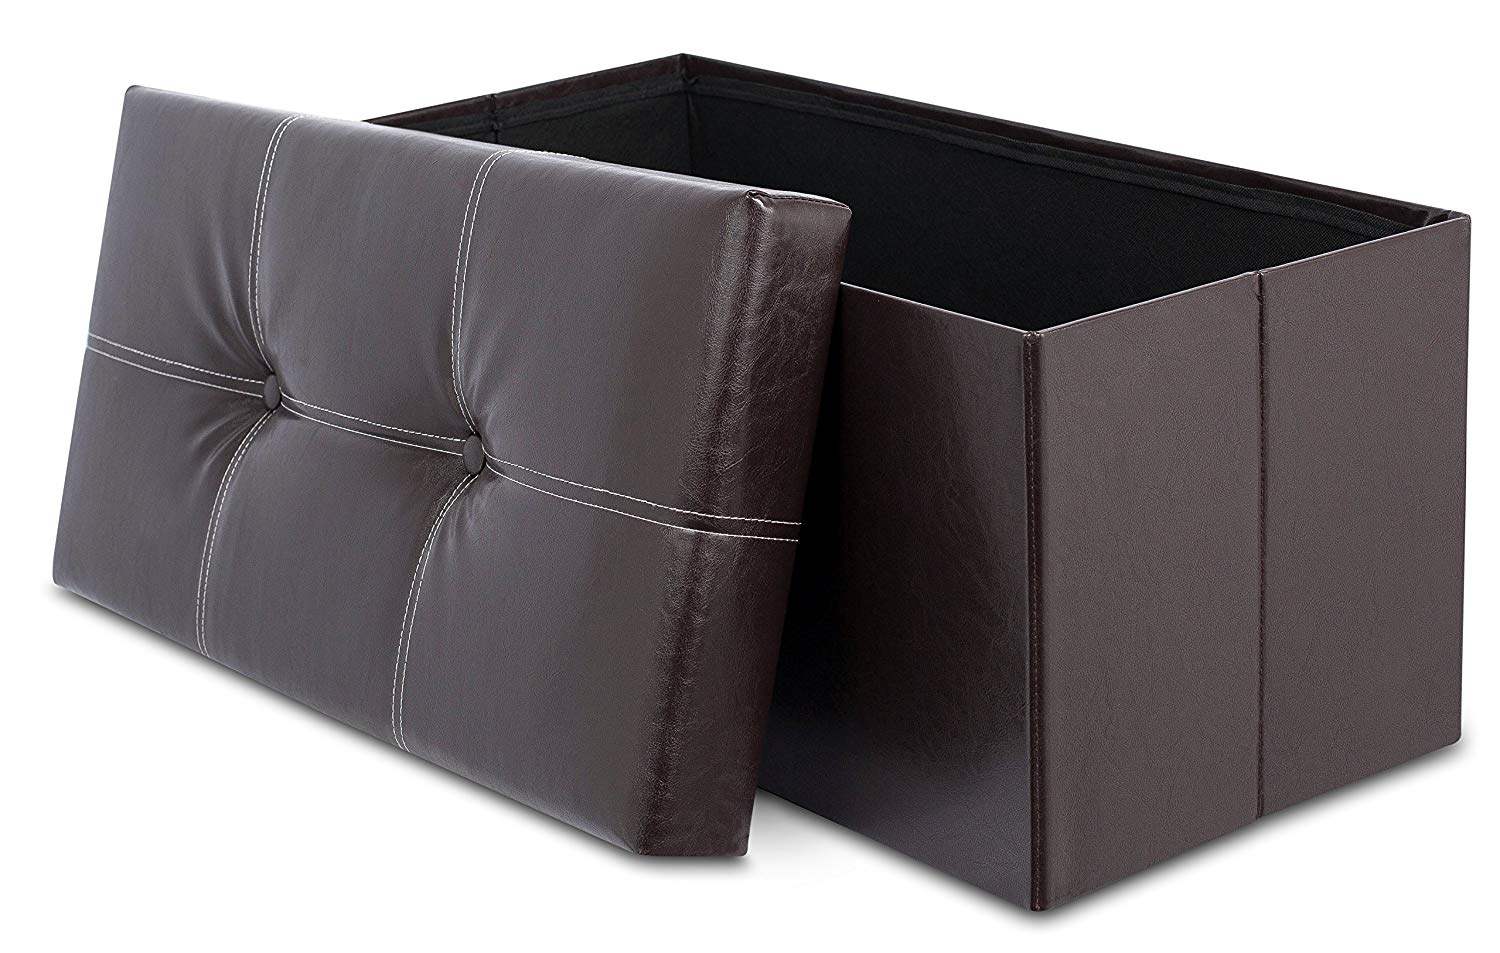 Internet S Best Faux Leather Folding Storage Ottoman Bench